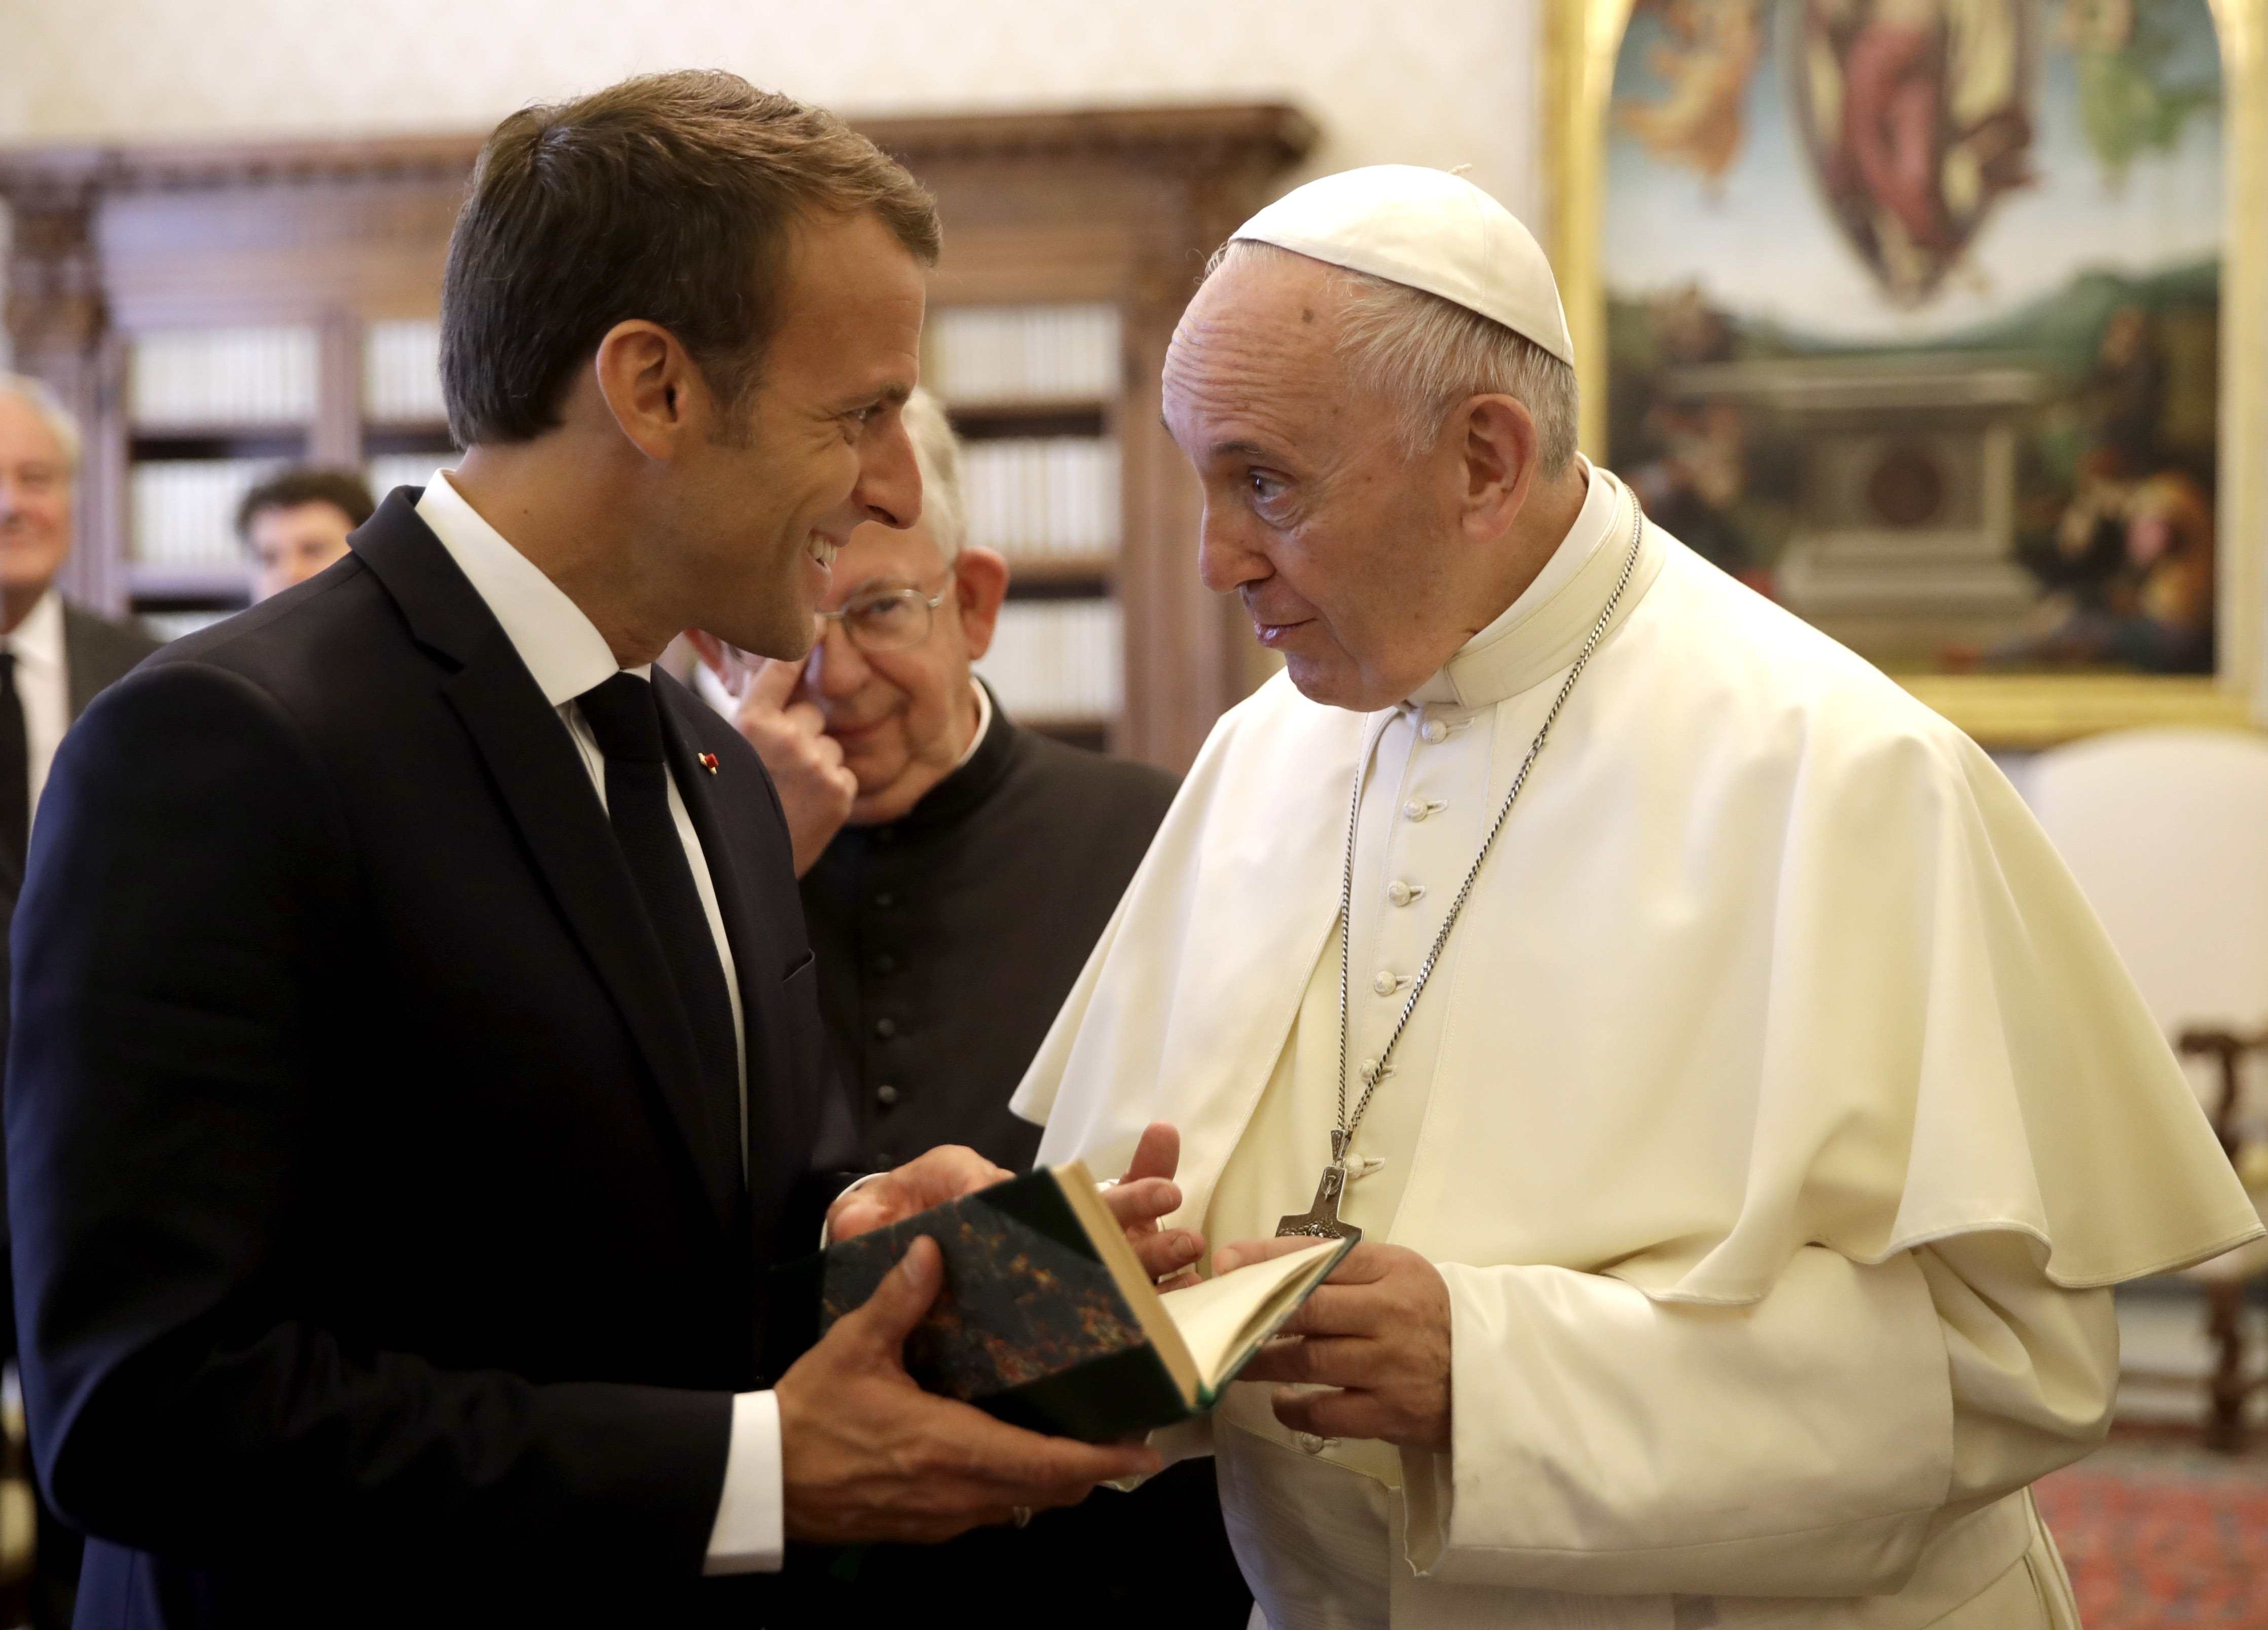 Pope Francis and French President Macron hit it off in first